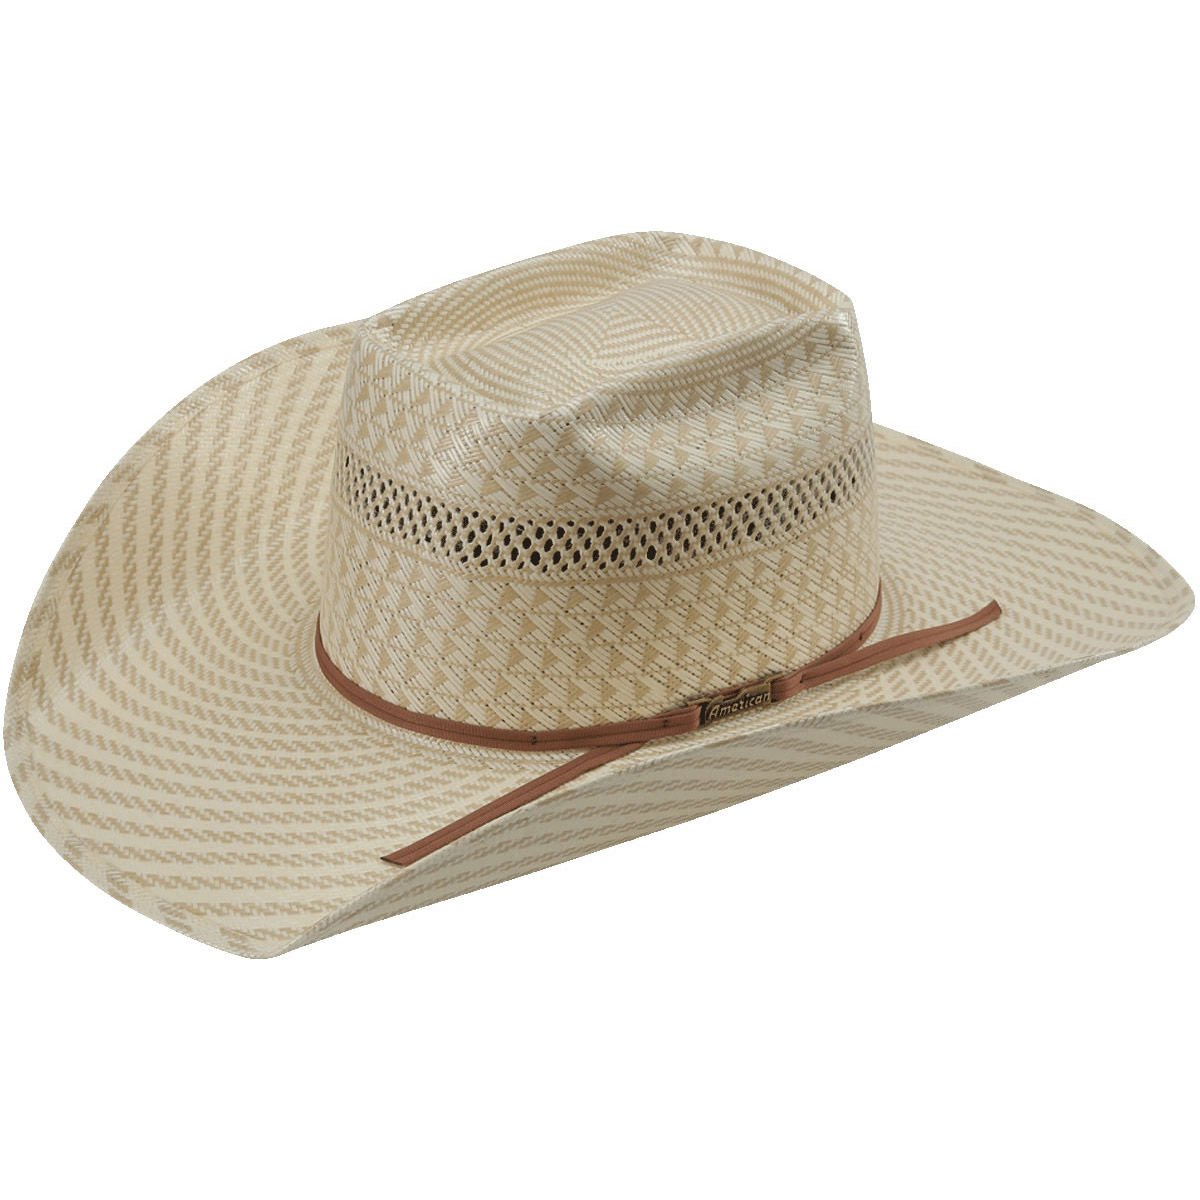 Pungo Ridge - American Hat Co 15☆ Swirl Vented Straw Hat - Tan ... 419048ccfce3